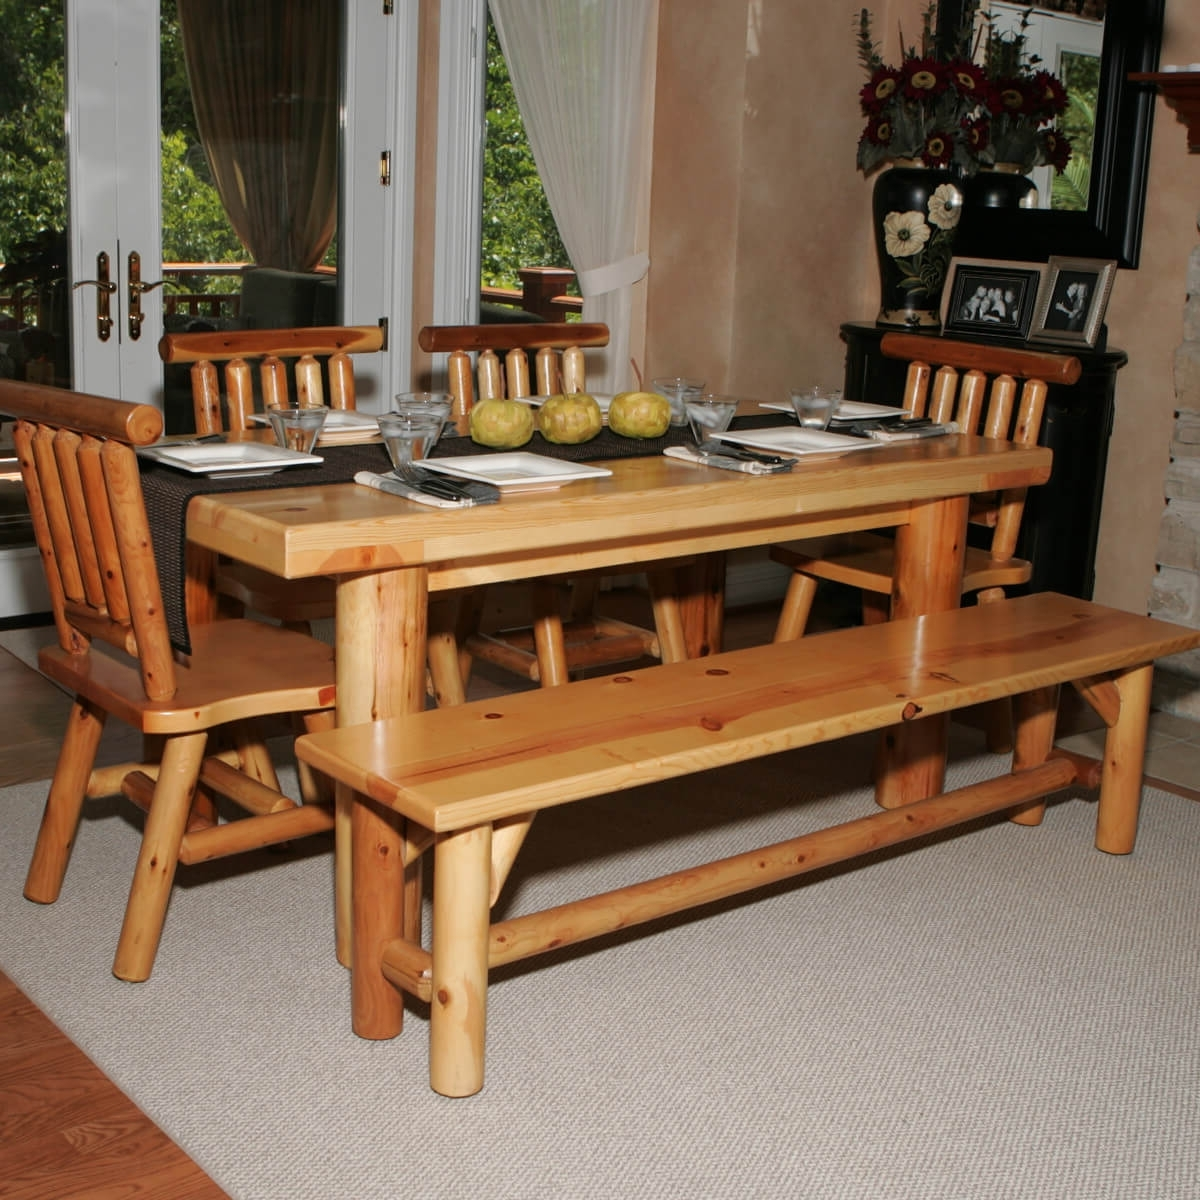 Dining Tables Seats 8 Intended For Most Up To Date 26 Dining Room Sets (Big And Small) With Bench Seating (2018) (Gallery 12 of 25)